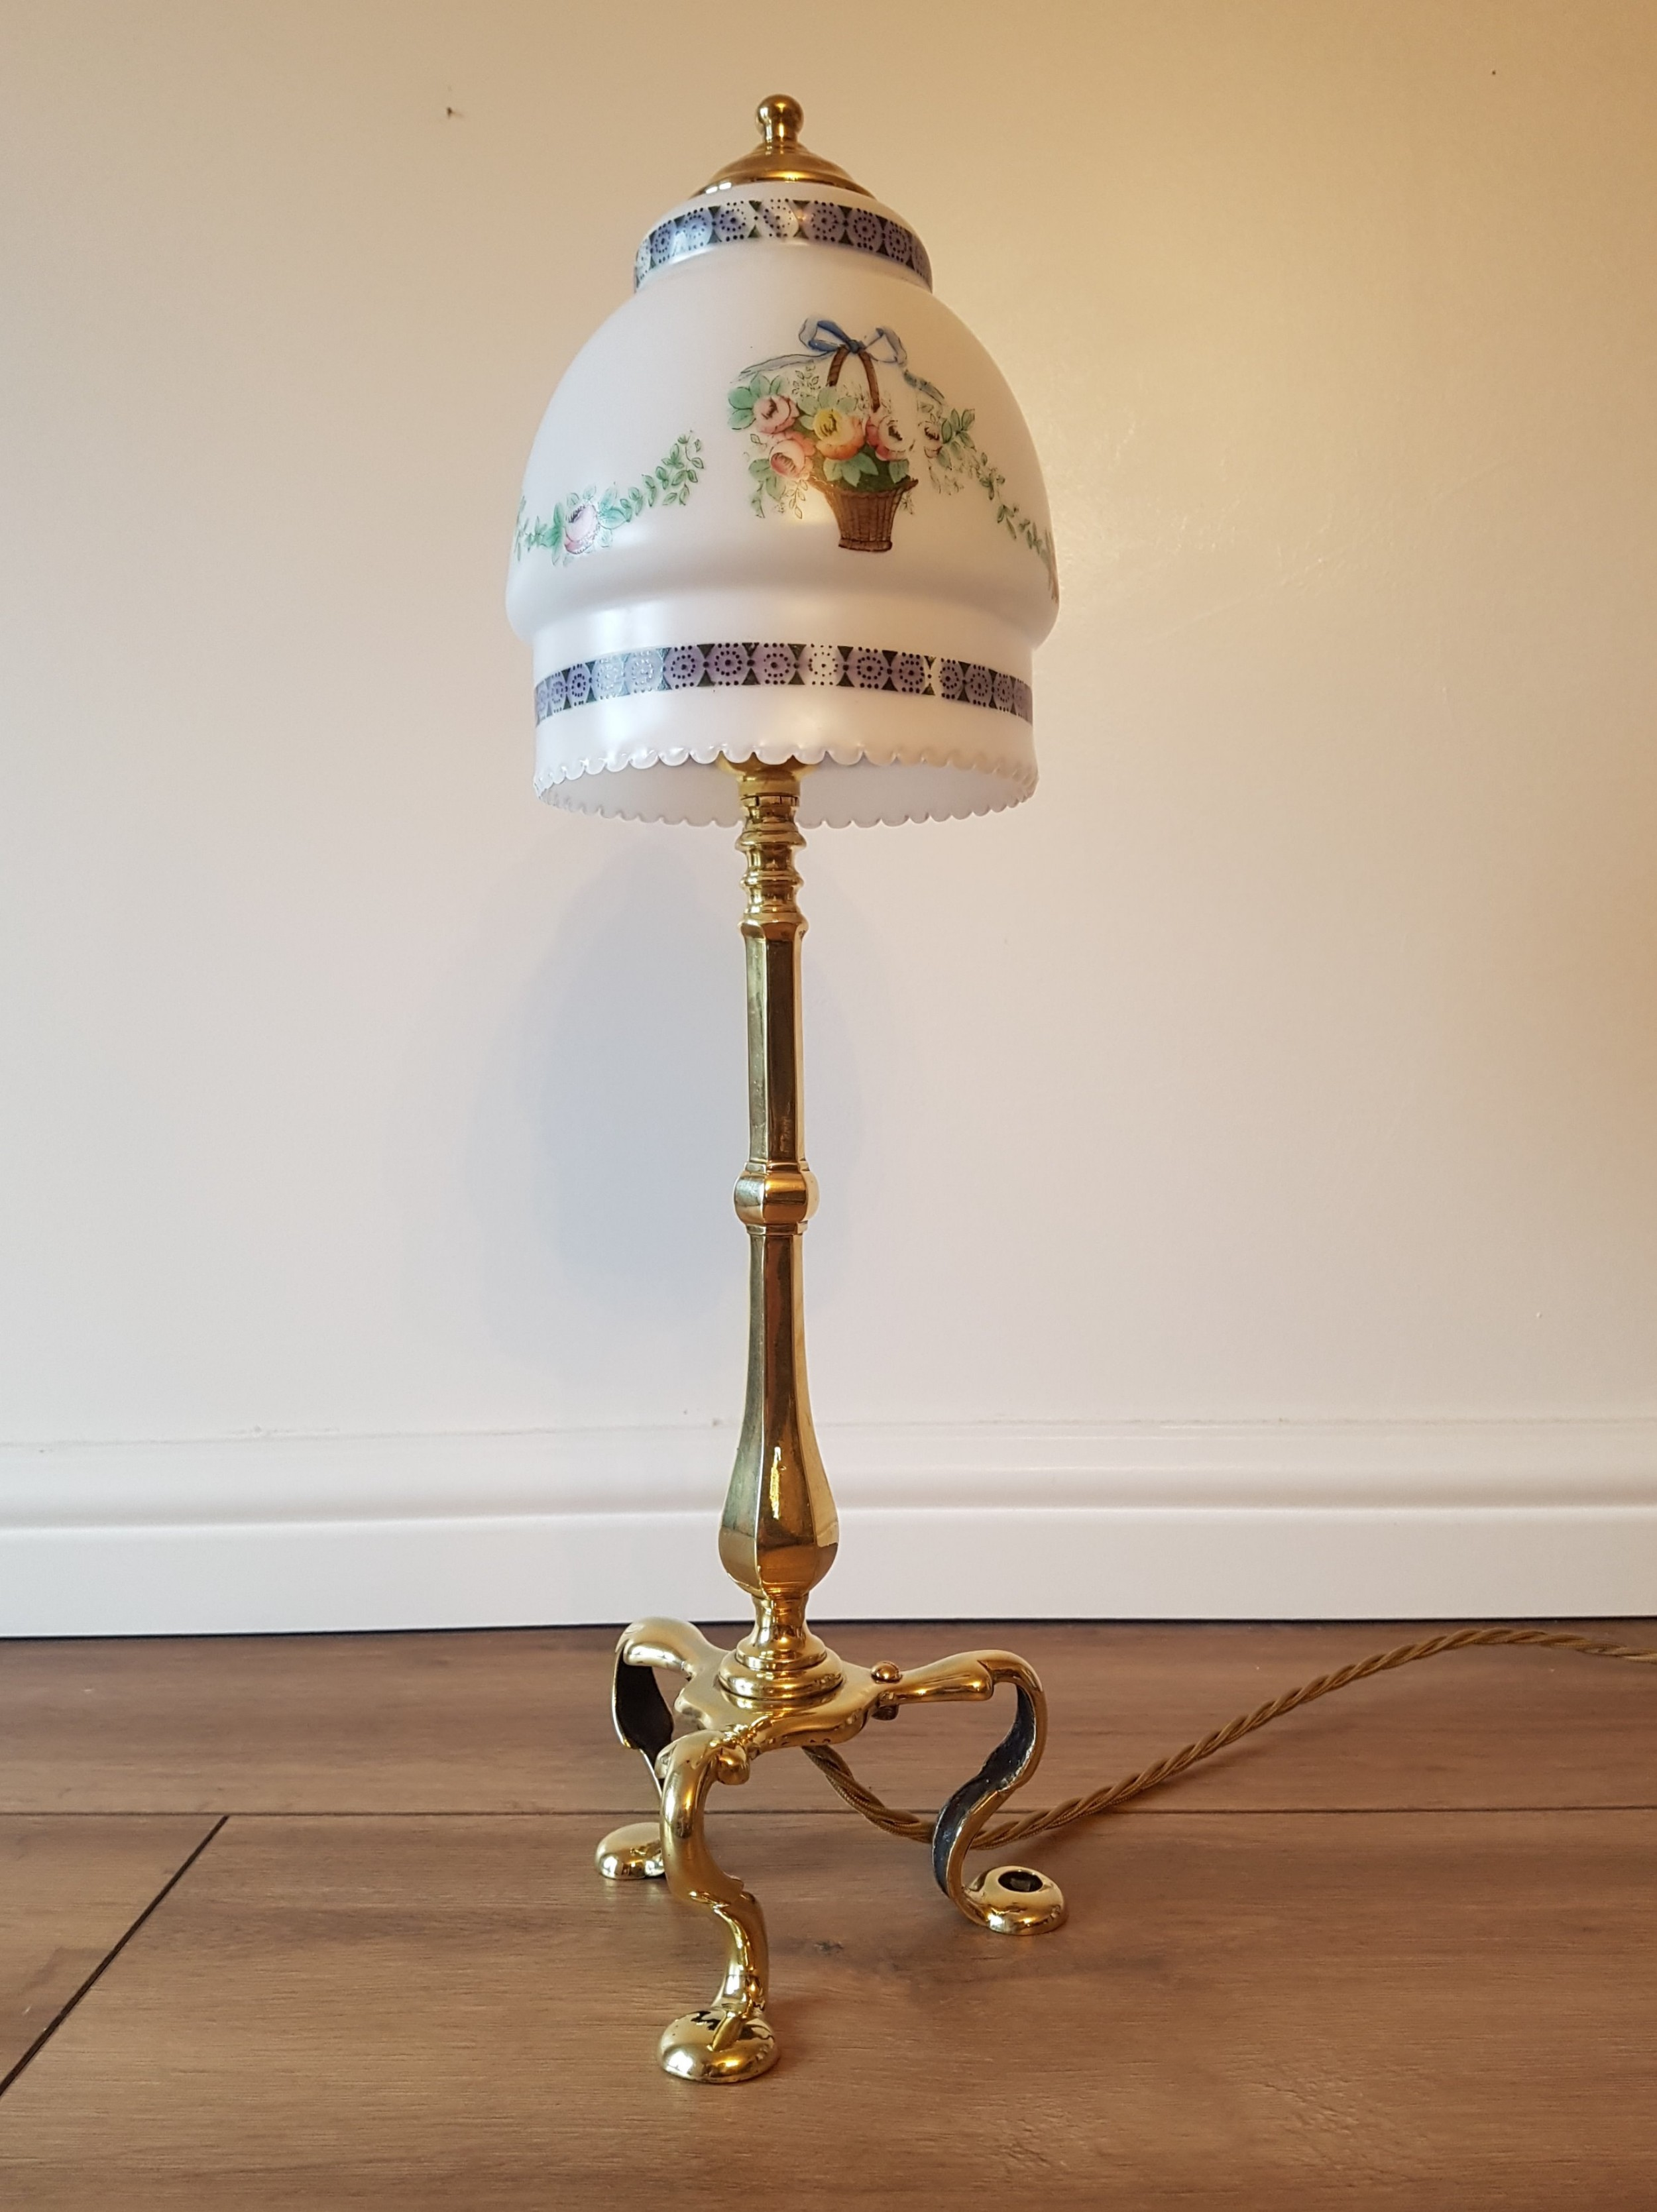 c1910 brass pullman table lamp 1 of a near pair rewired